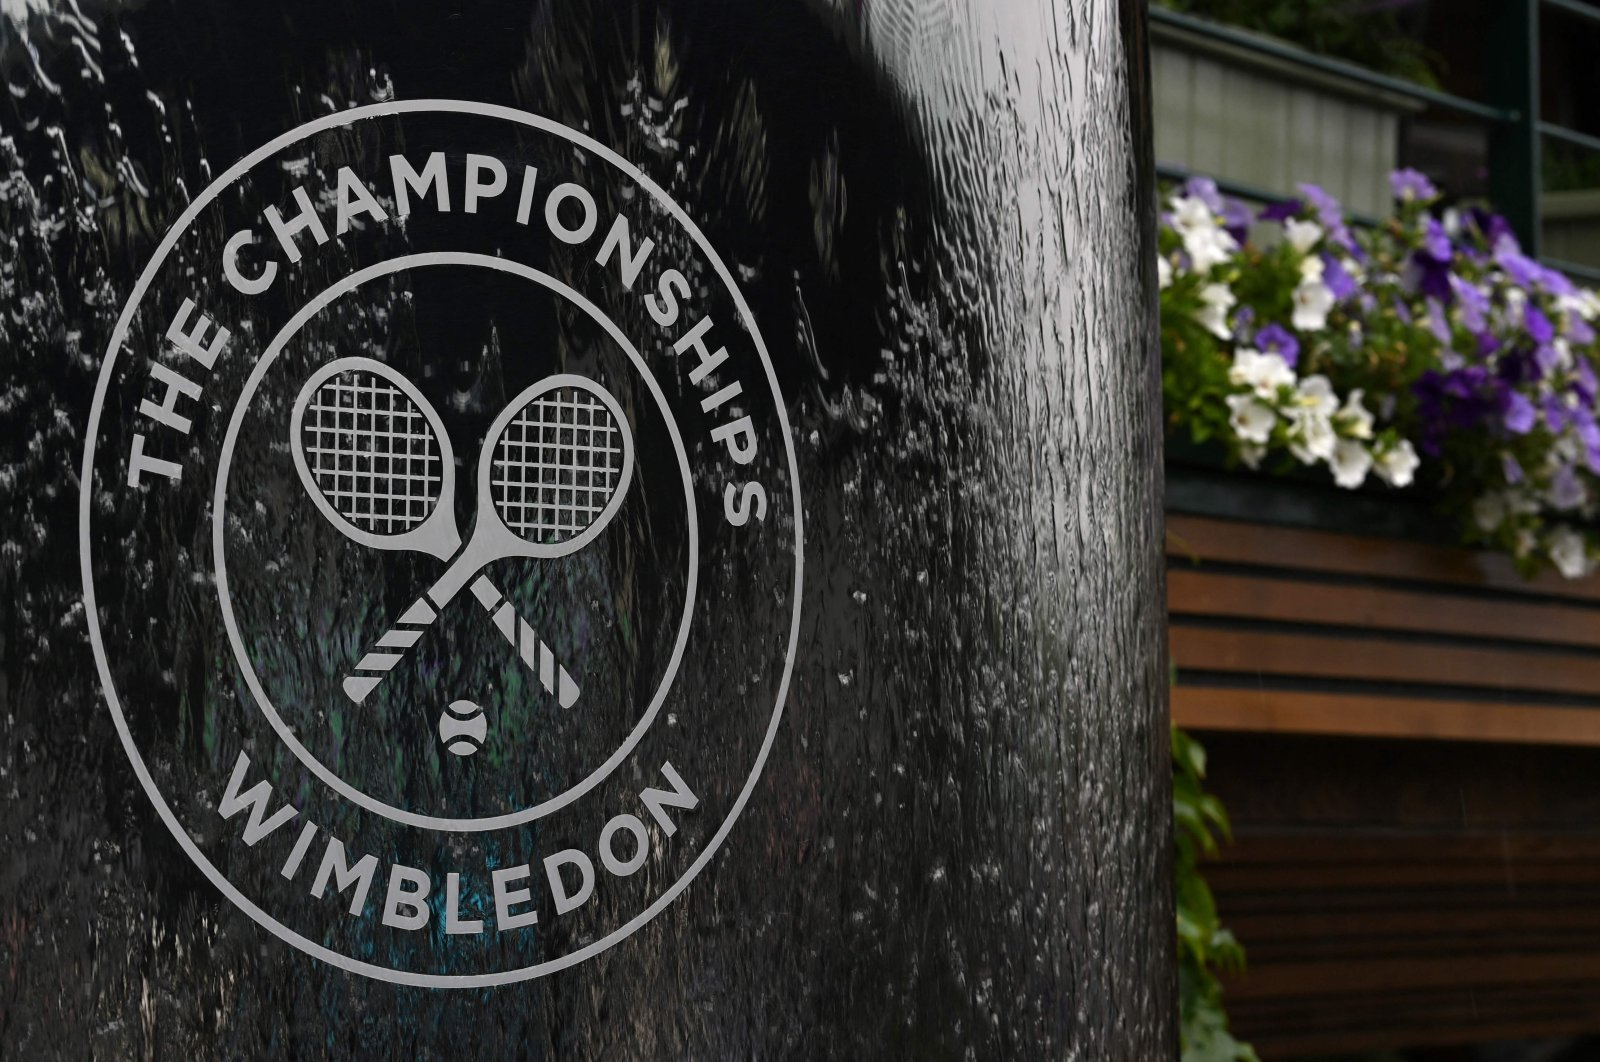 The Wimbledon logo on a water feature during the 2021 Wimbledon at the All England Tennis Club in Wimbledon, London, England, July 3, 2021. (AFP Photo)